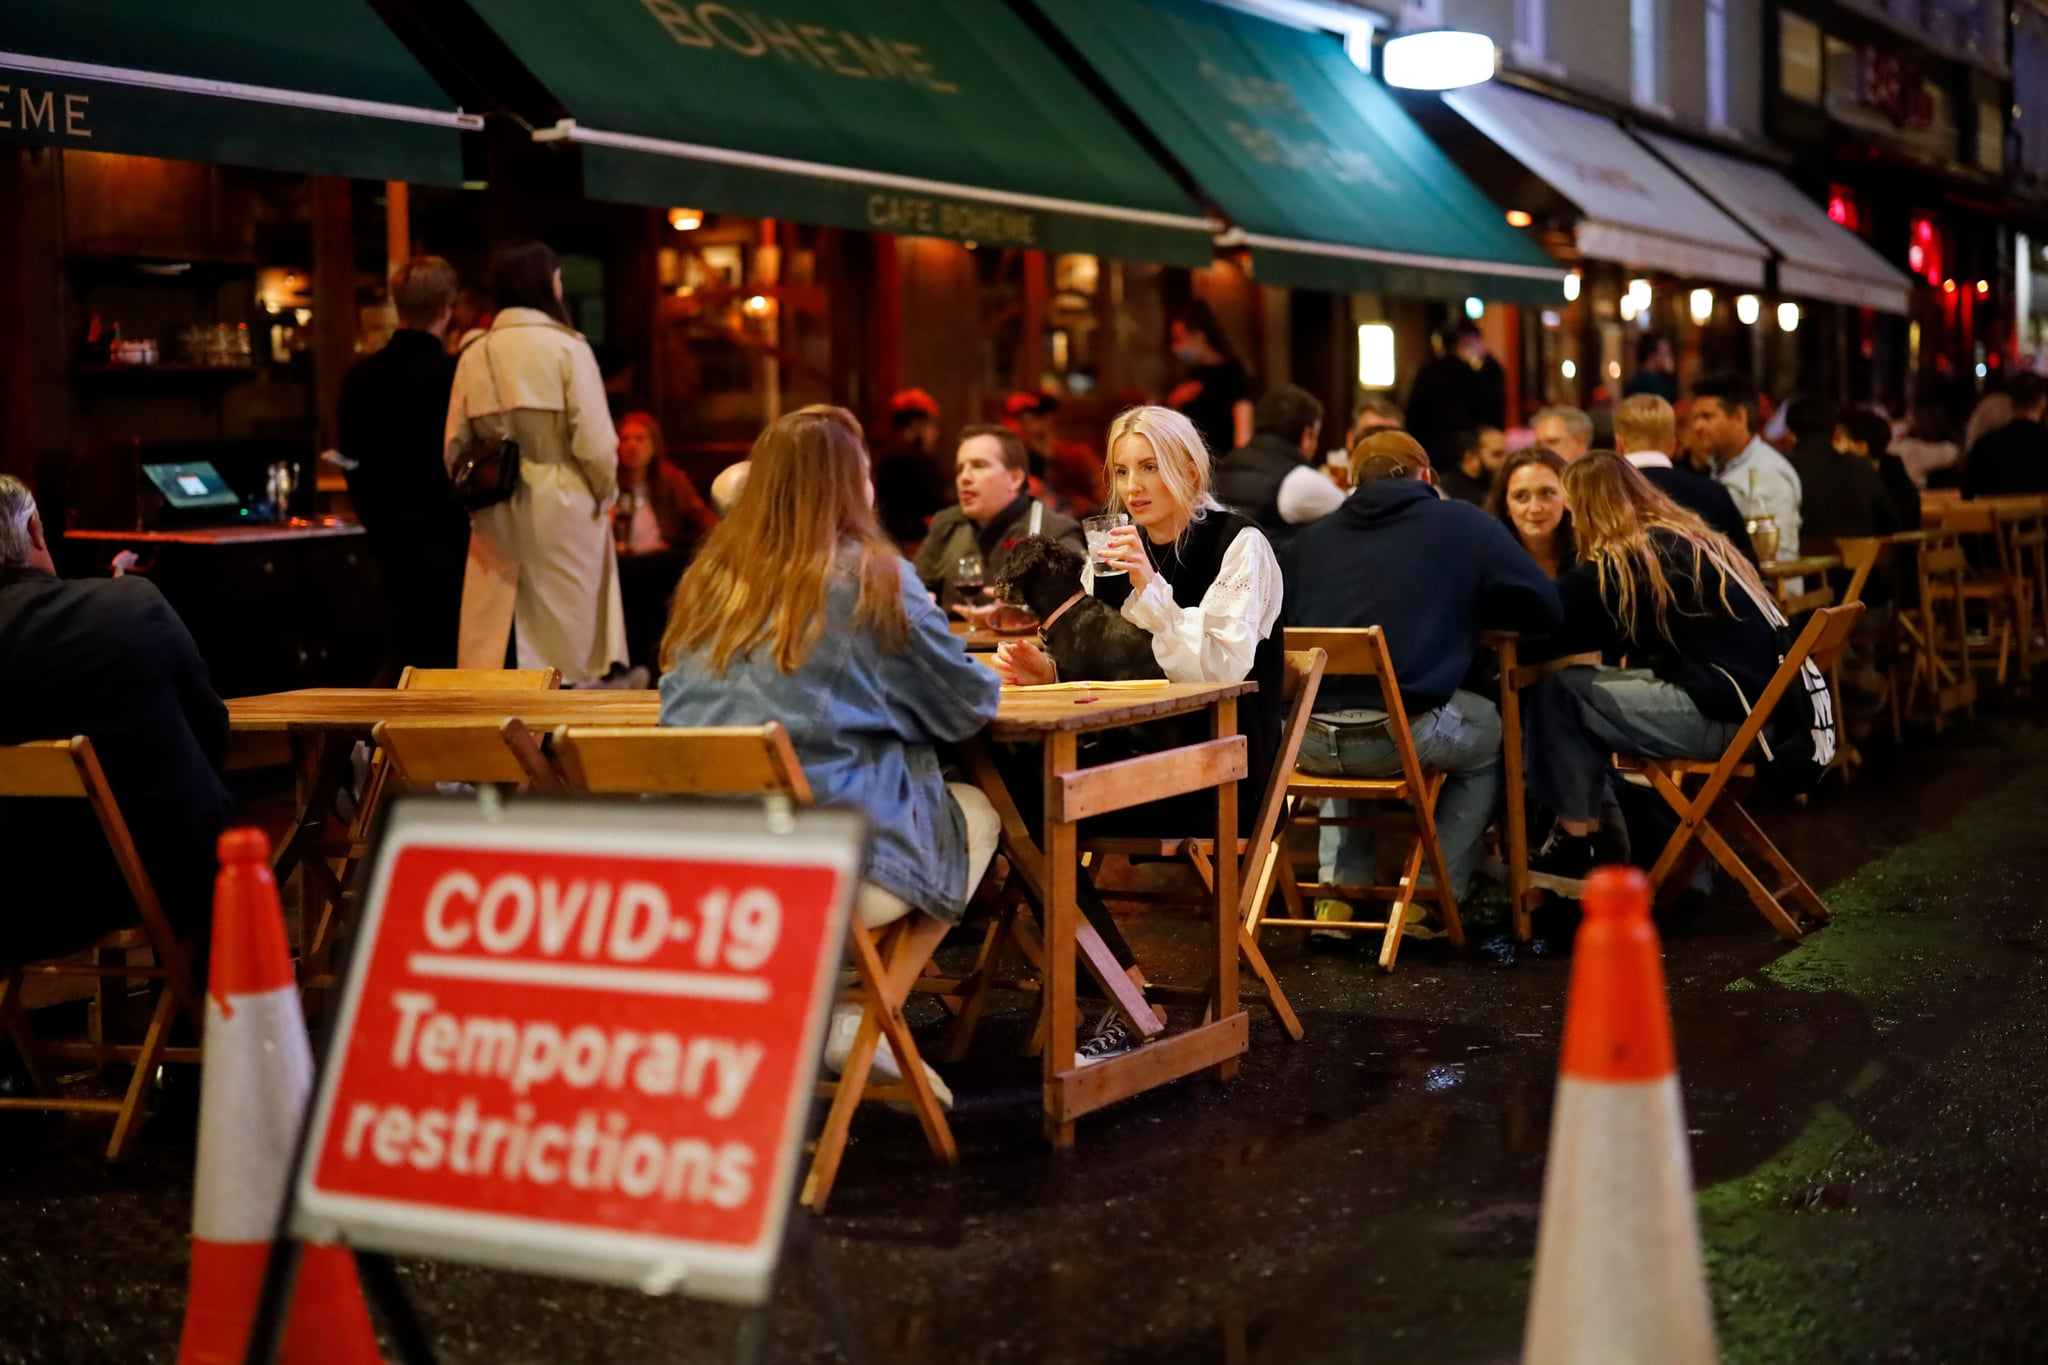 People drink at the outside tables of a cafe in Soho, in central London on September 23, 2020. - Britain on Tuesday tightened restrictions to stem a surge of coronavirus cases, ordering pubs to close early and advising people to go back to working from home to prevent a second national lockdown. (Photo by Tolga Akmen / AFP) (Photo by TOLGA AKMEN/AFP via Getty Images)